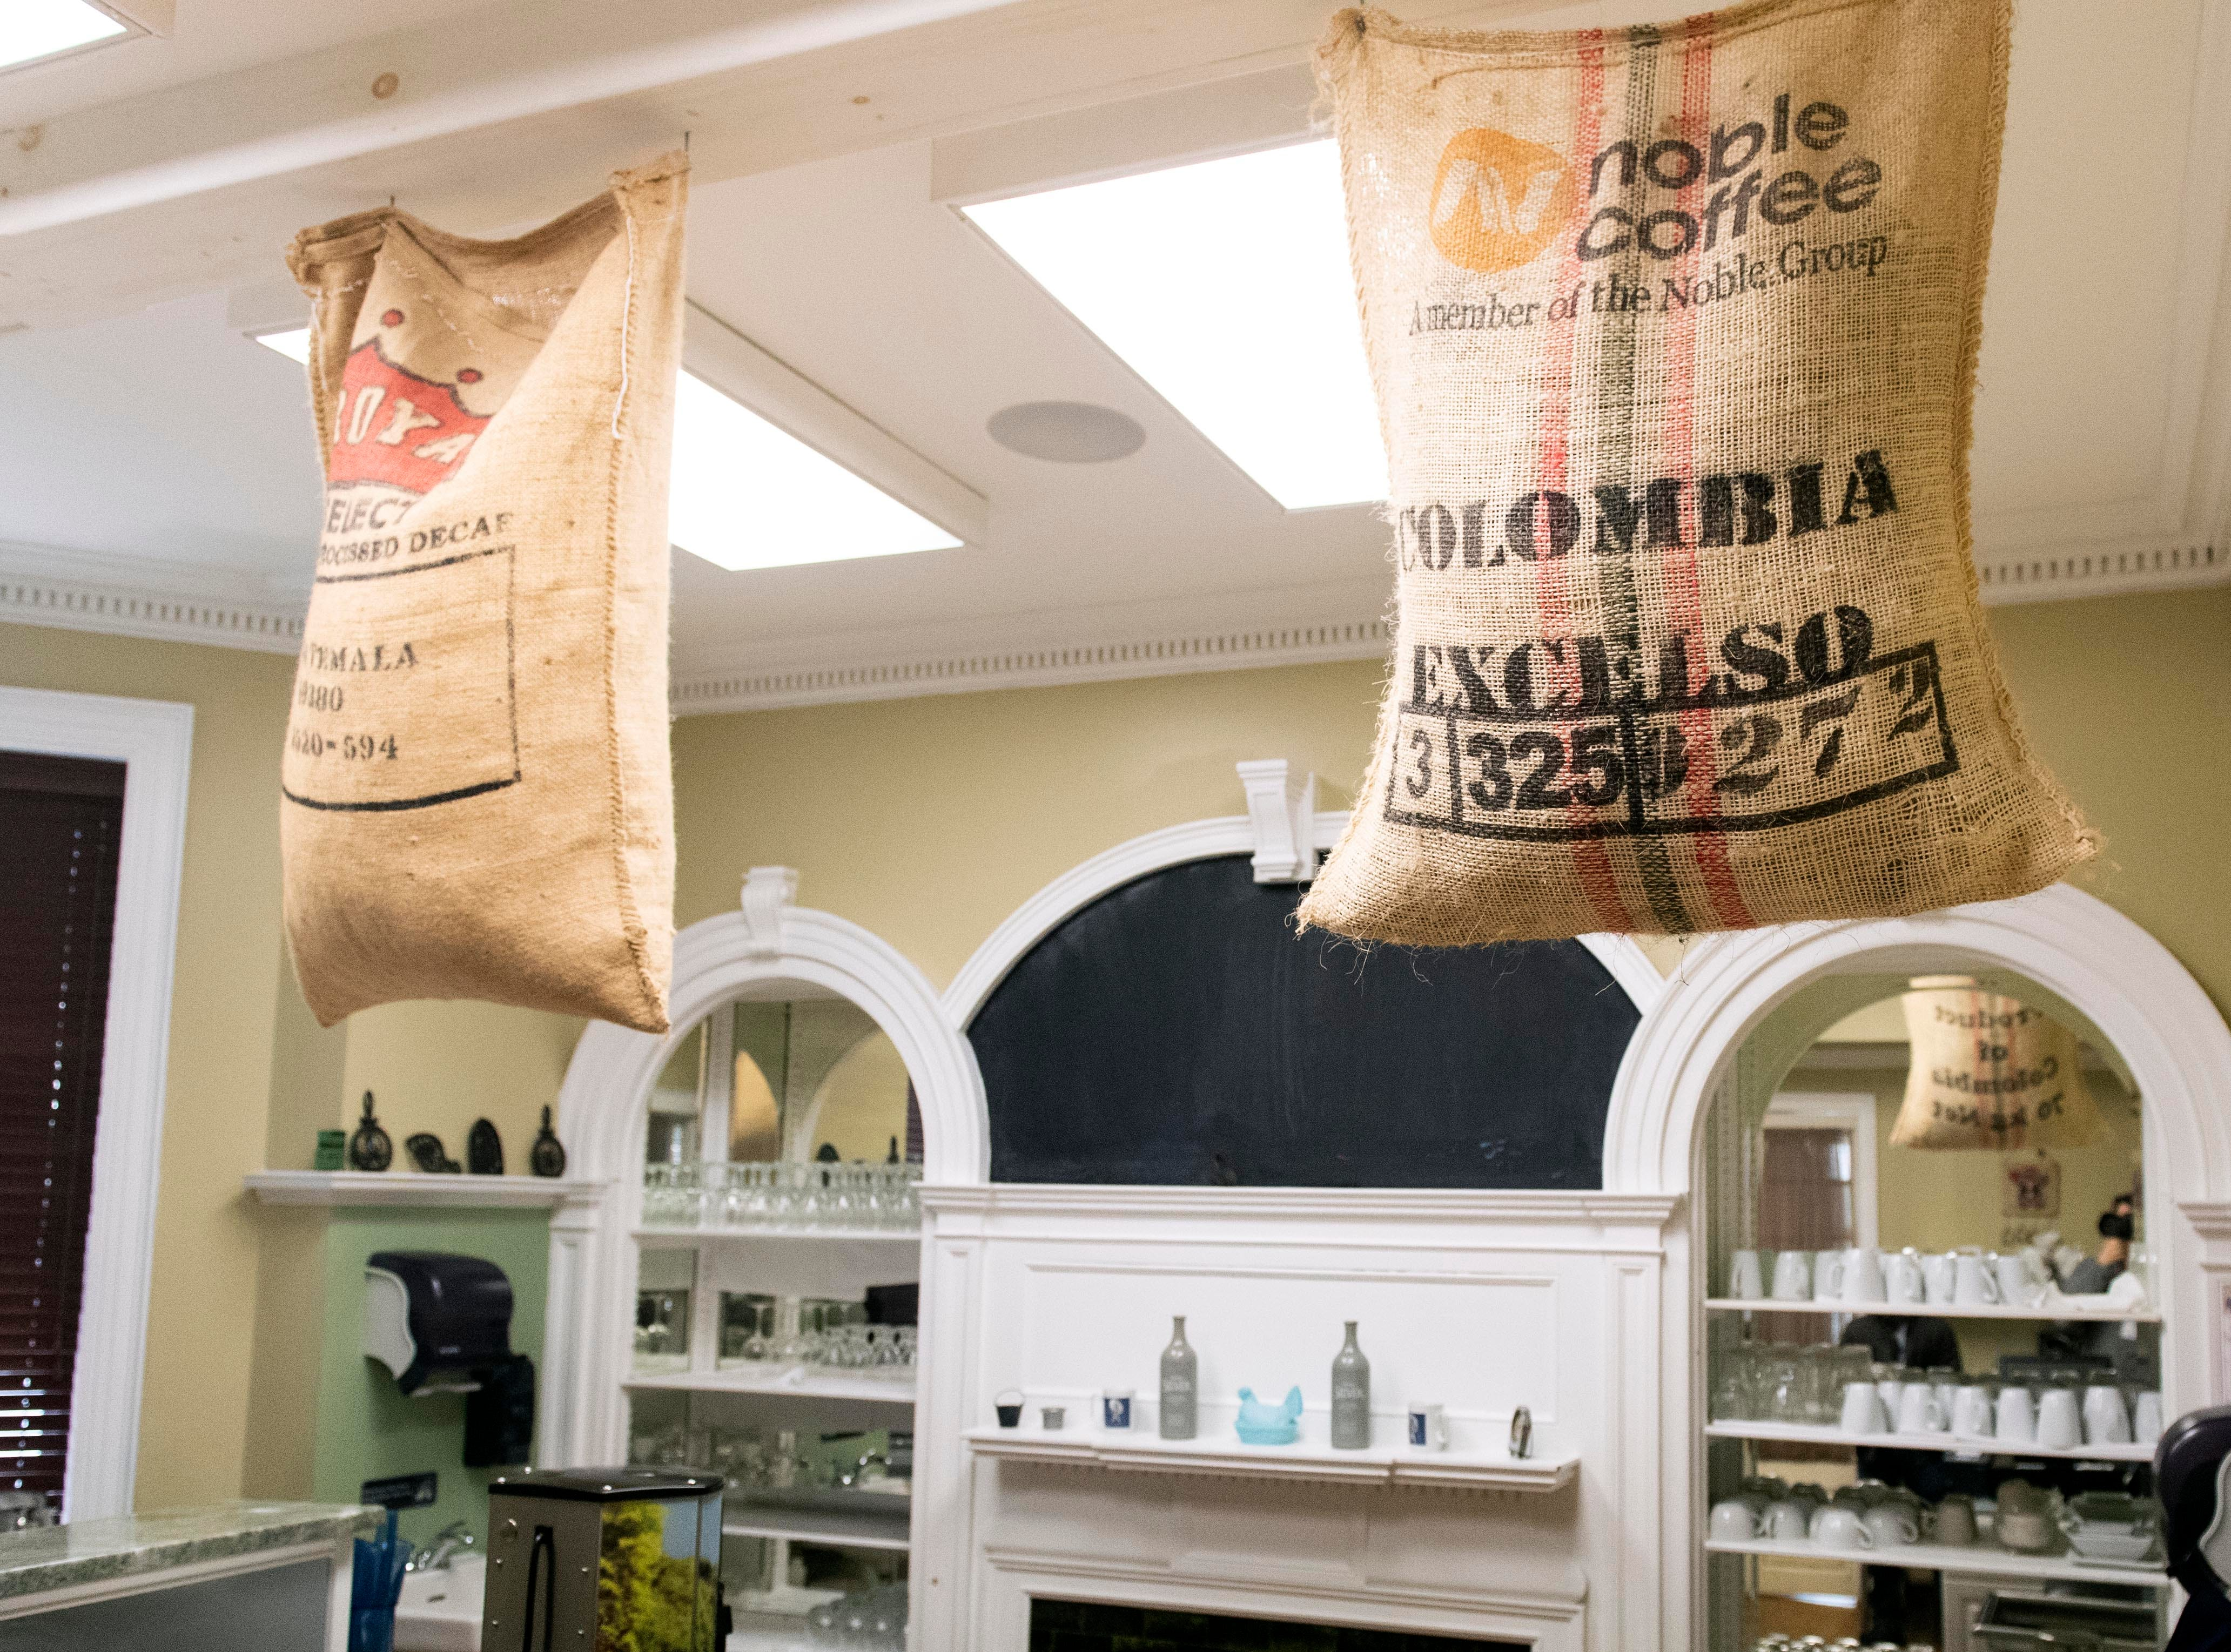 These coffee bags hanging over the servers' station at HomeGrown were remnants from the Front Porch Cafe, which closed in March of 2018. HomeGrown, the new restaurant in the historic Frey Mansion is set to open Jan. 10, featuring an American-style menu with a French twist.